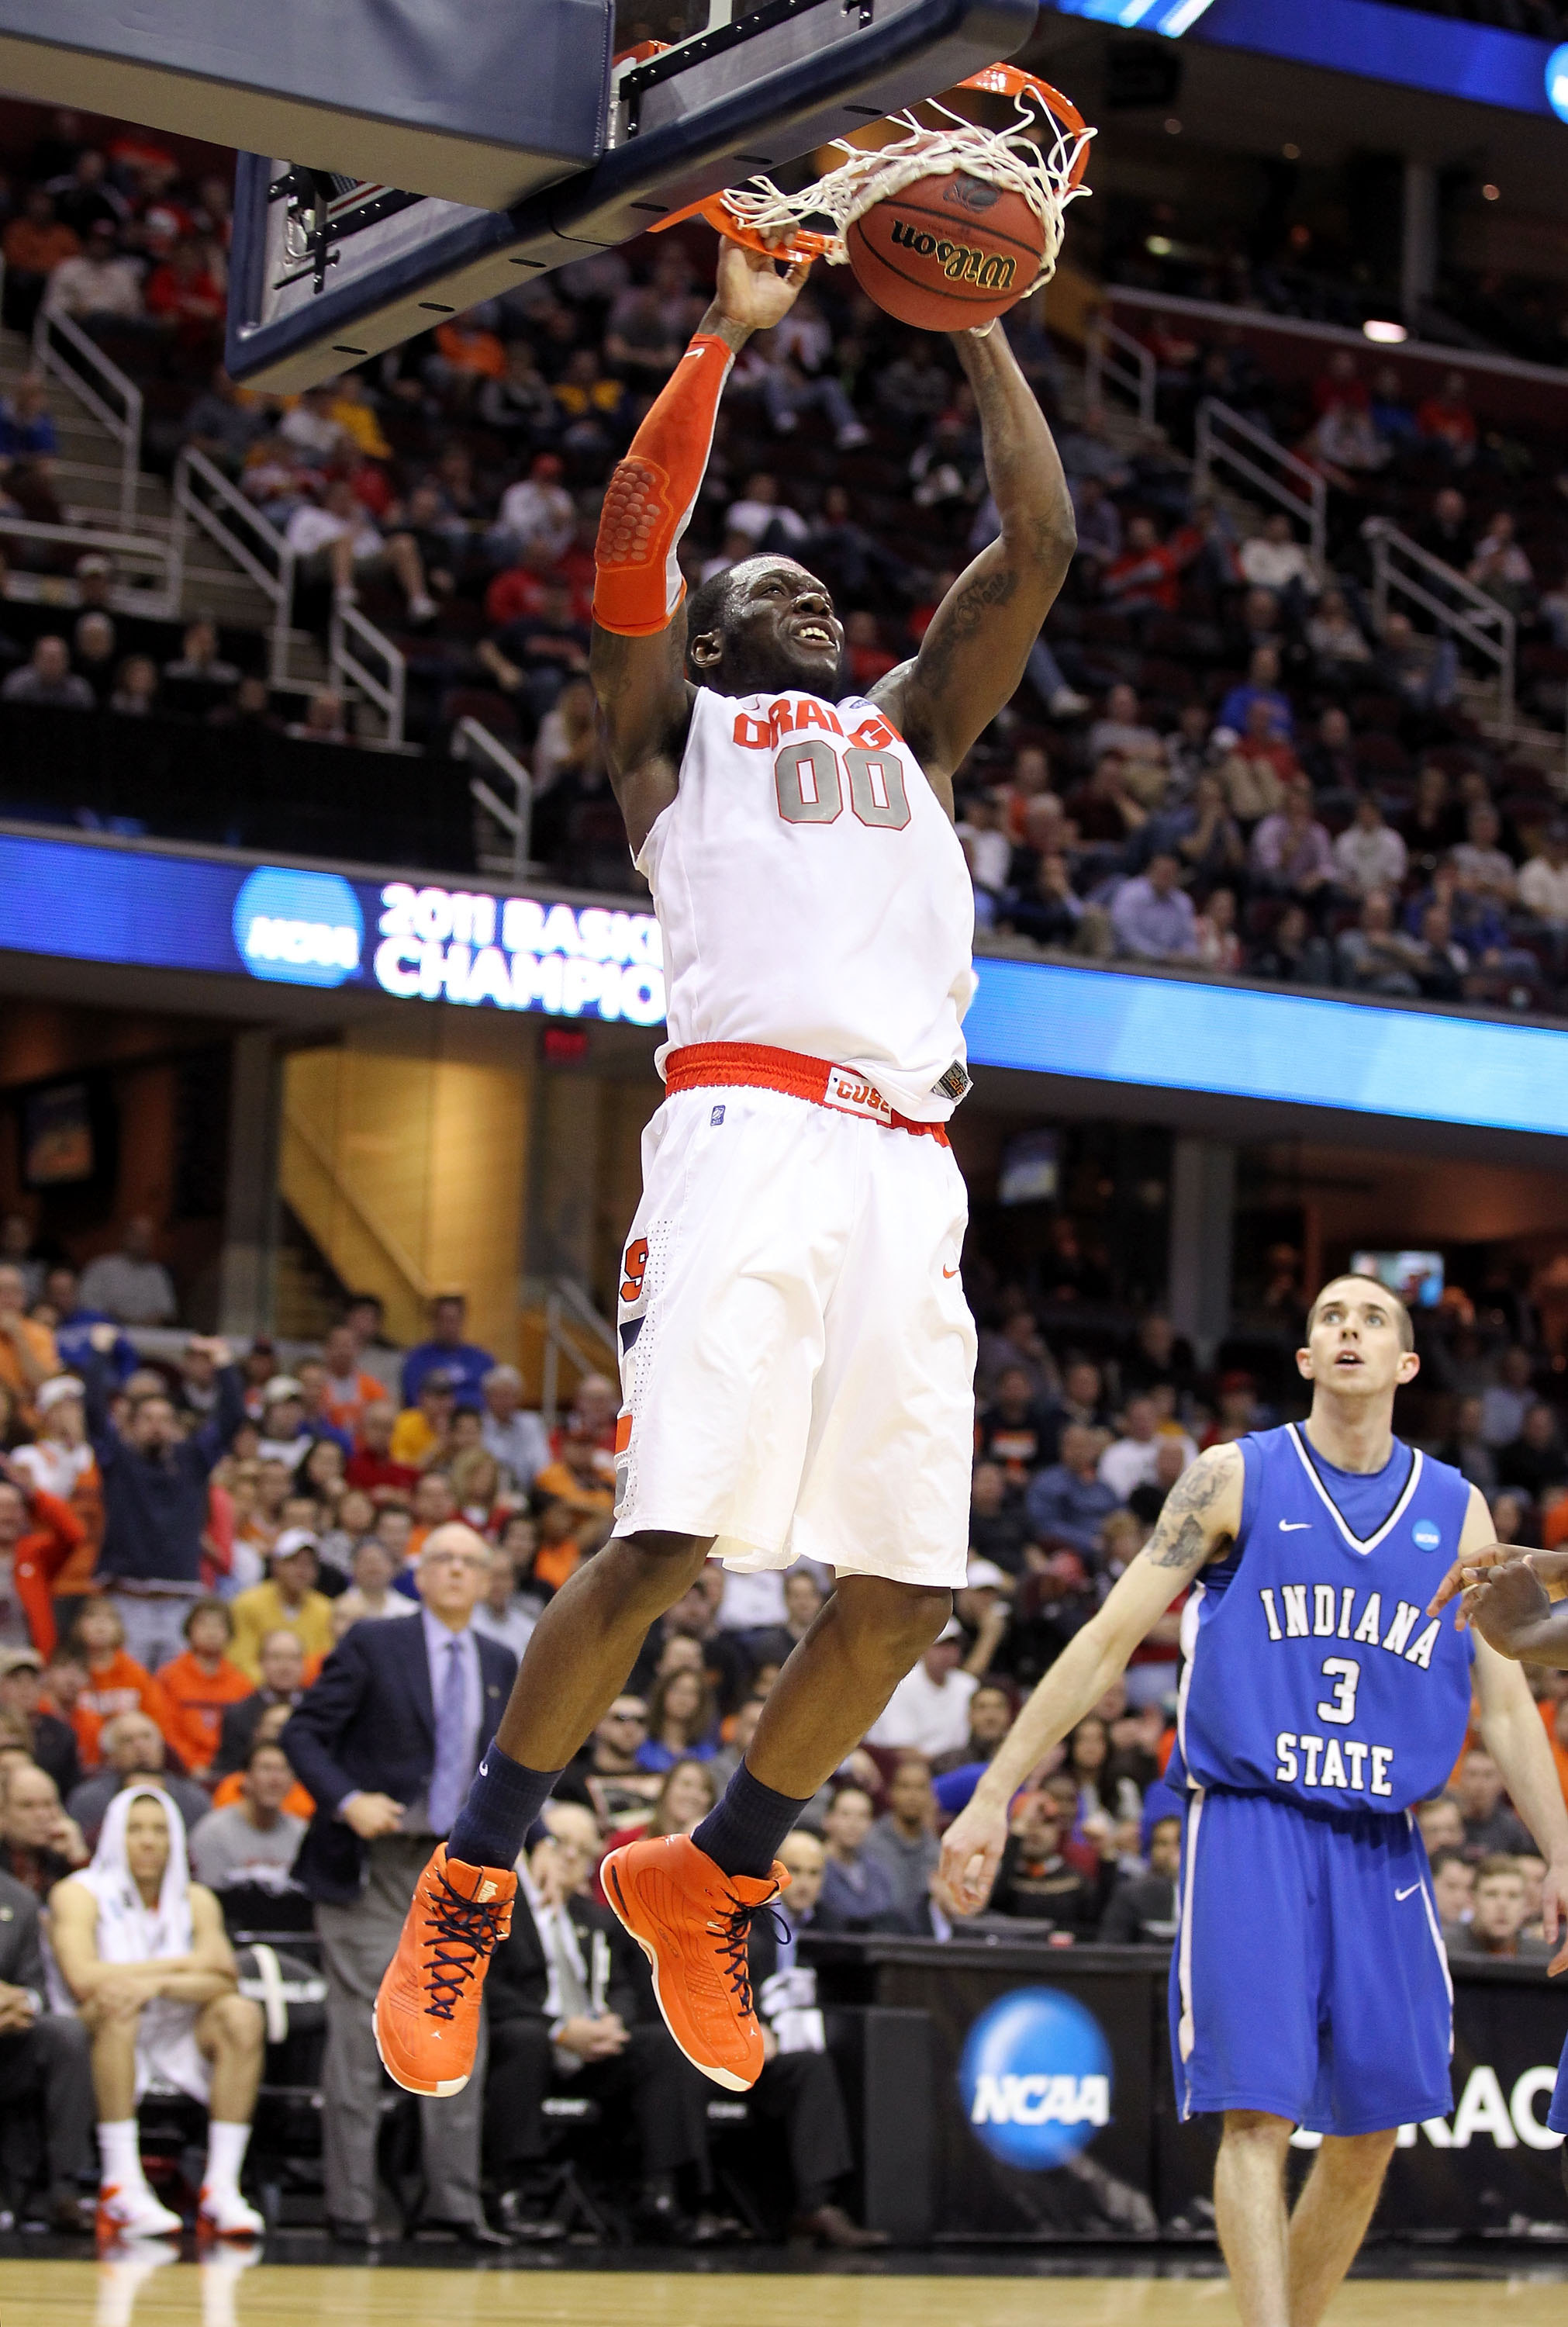 CLEVELAND, OH - MARCH 18: Rick Jackson #00 of the Syracuse Orange goes up for a dunk against the Indiana State Sycamores during the second round of the 2011 NCAA men's basketball tournament at Quicken Loans Arena on March 18, 2011 in Cleveland, Ohio.  (Ph